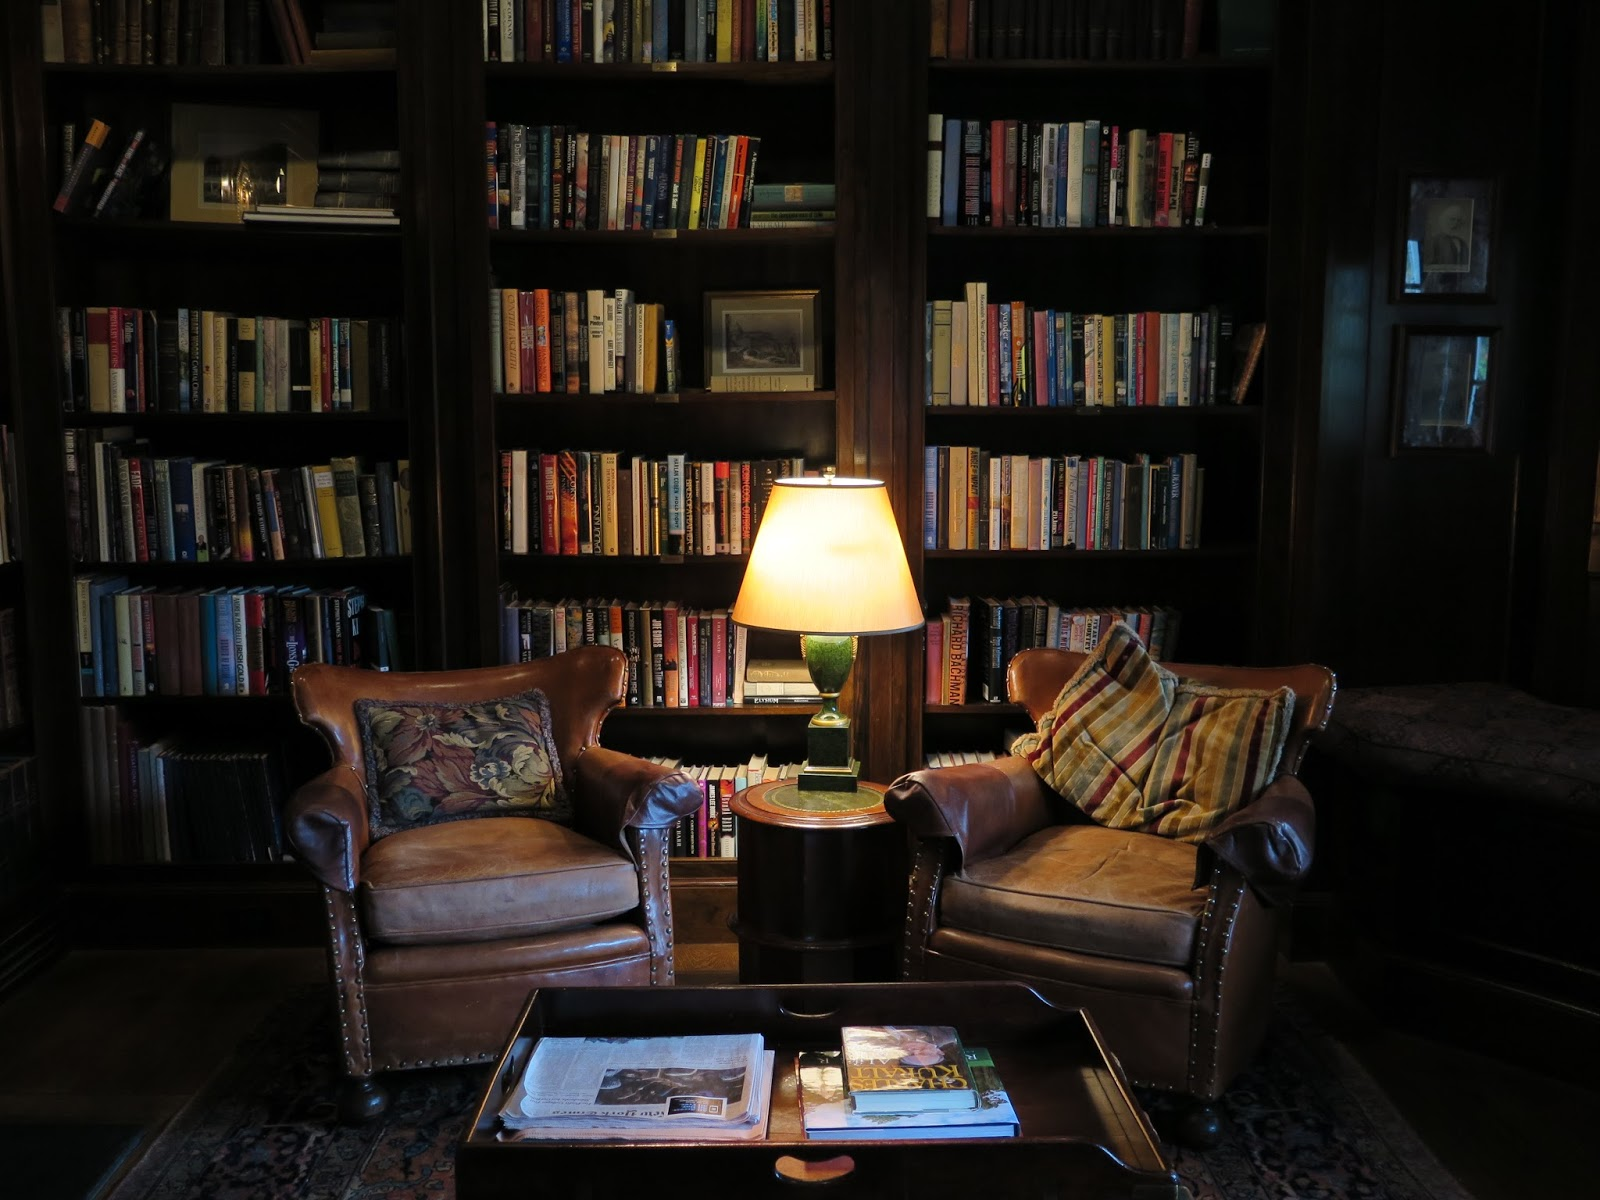 Ciao domenica a room for book lovers - Home library design ideas for the book lovers ...